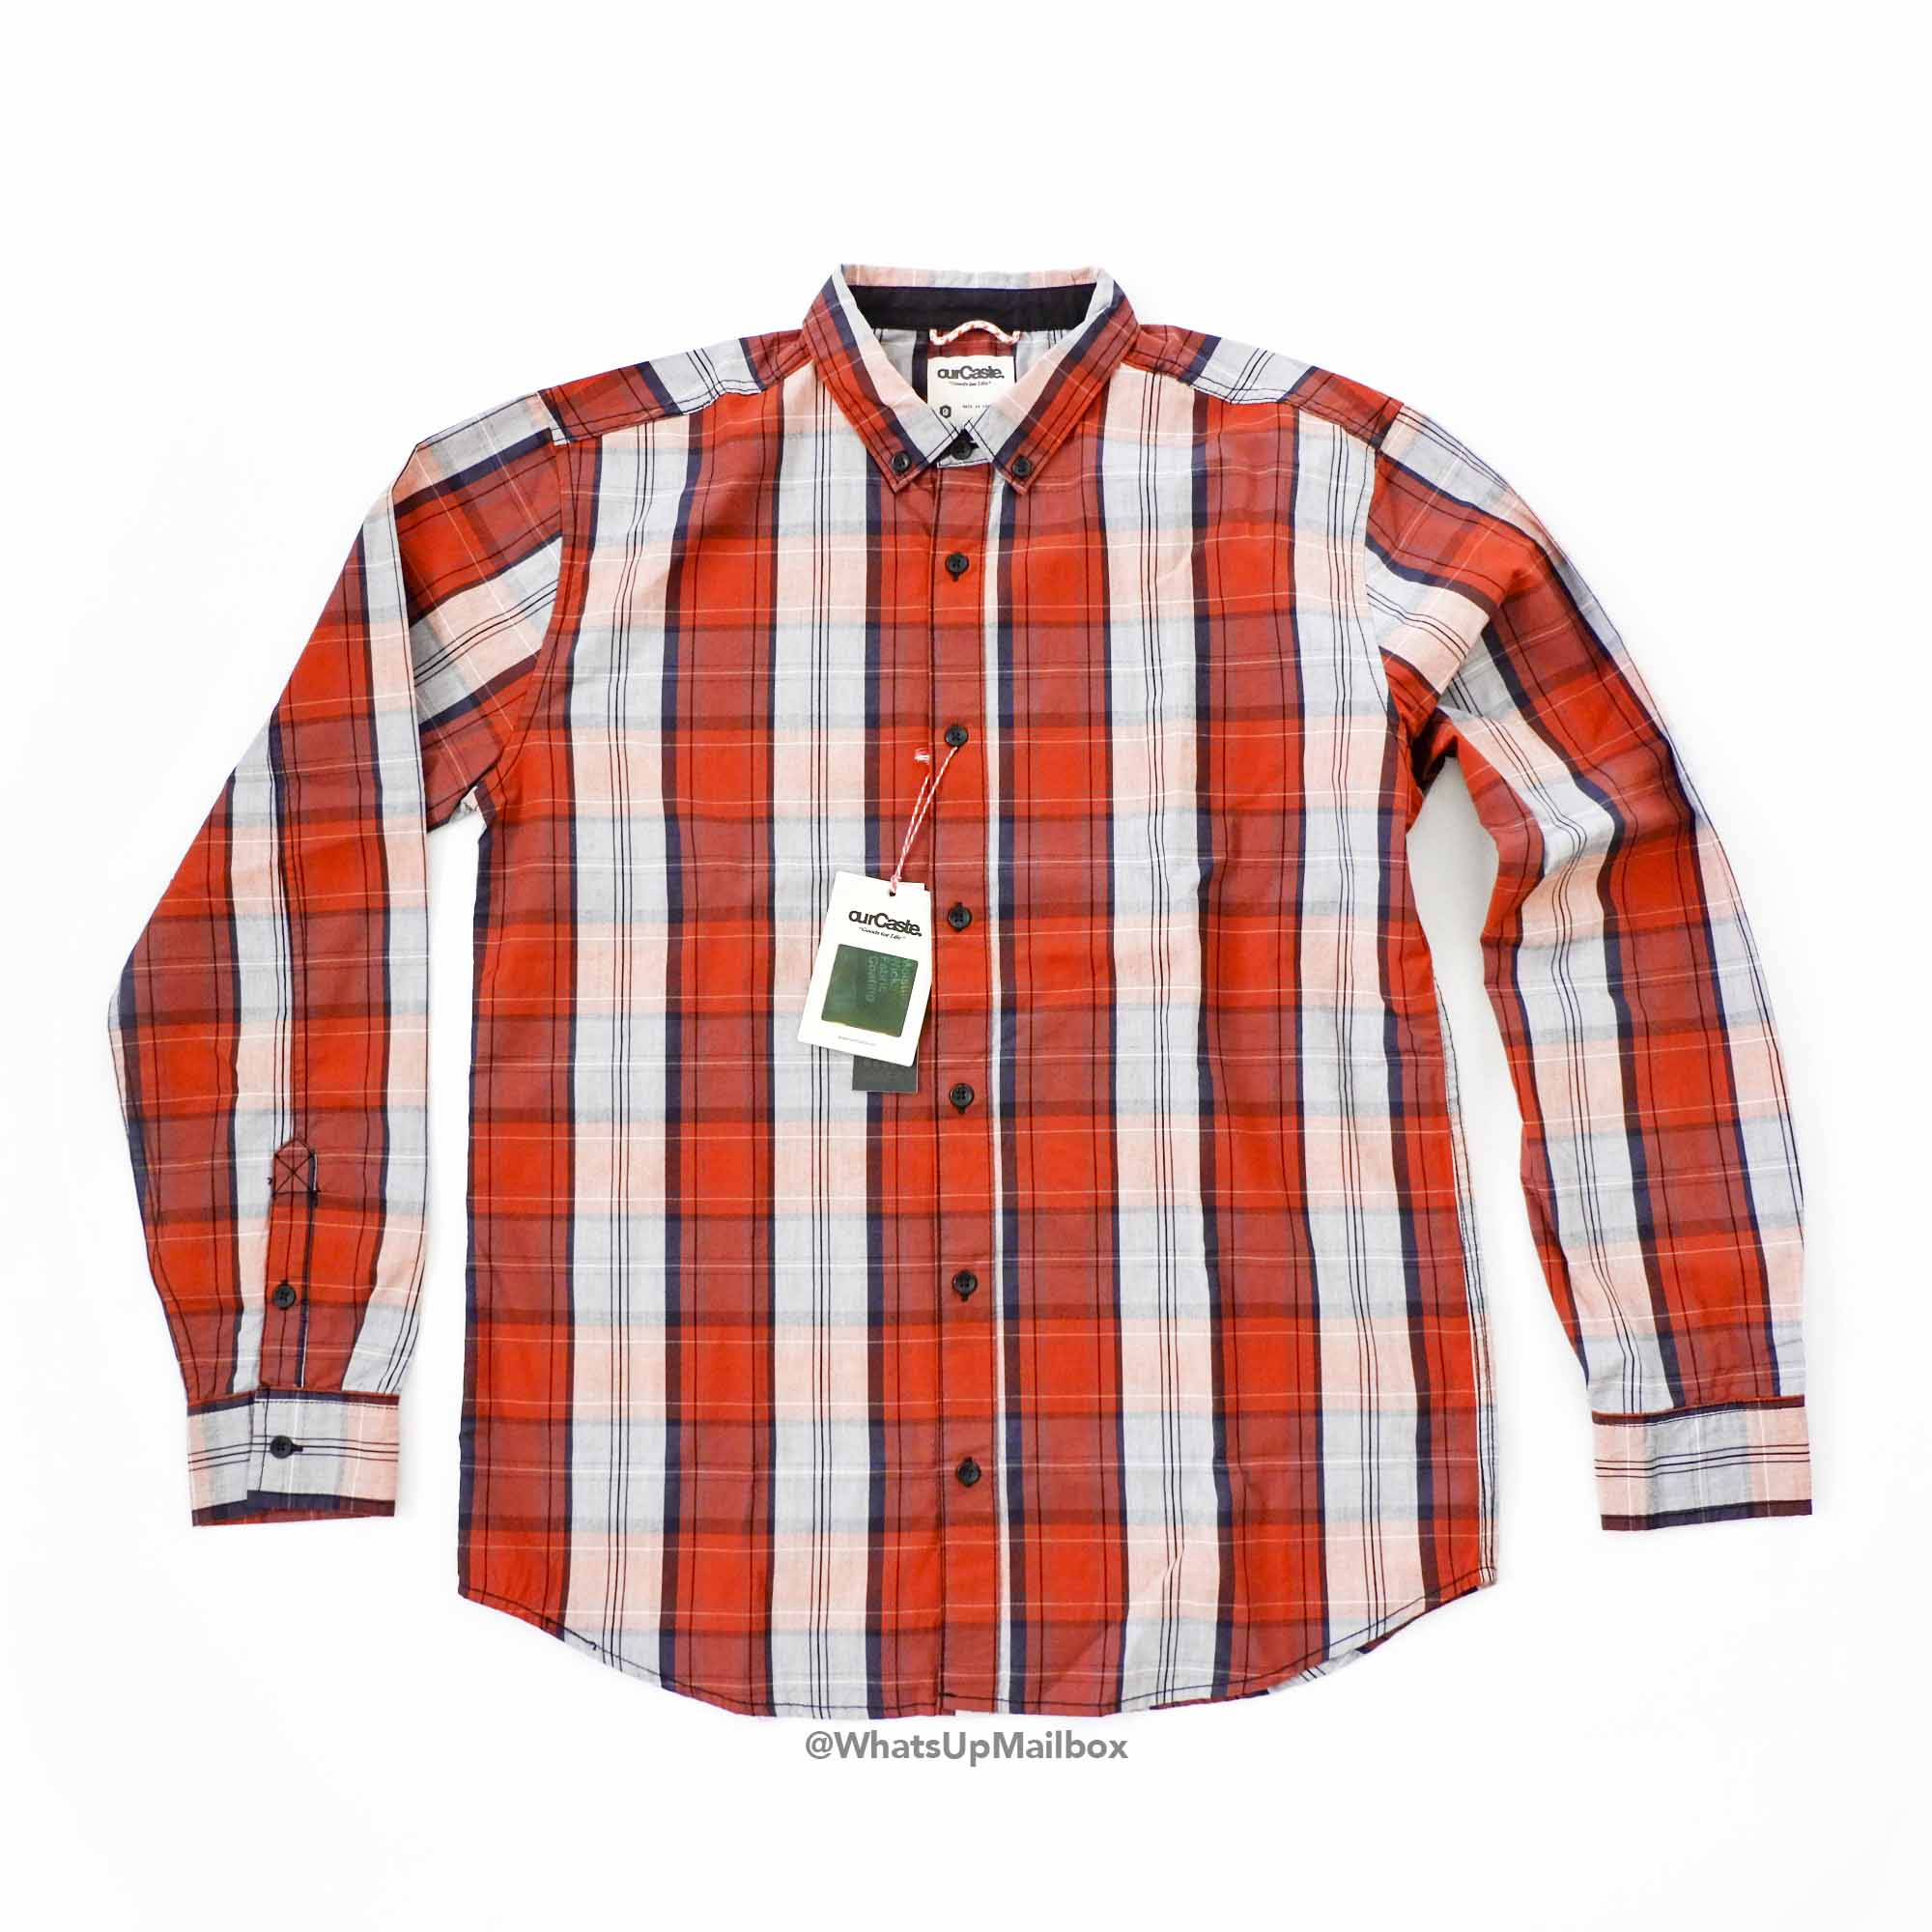 Trendy Butler - ourCaste Kevin Long Sleeve Plaid Button Up Shirt